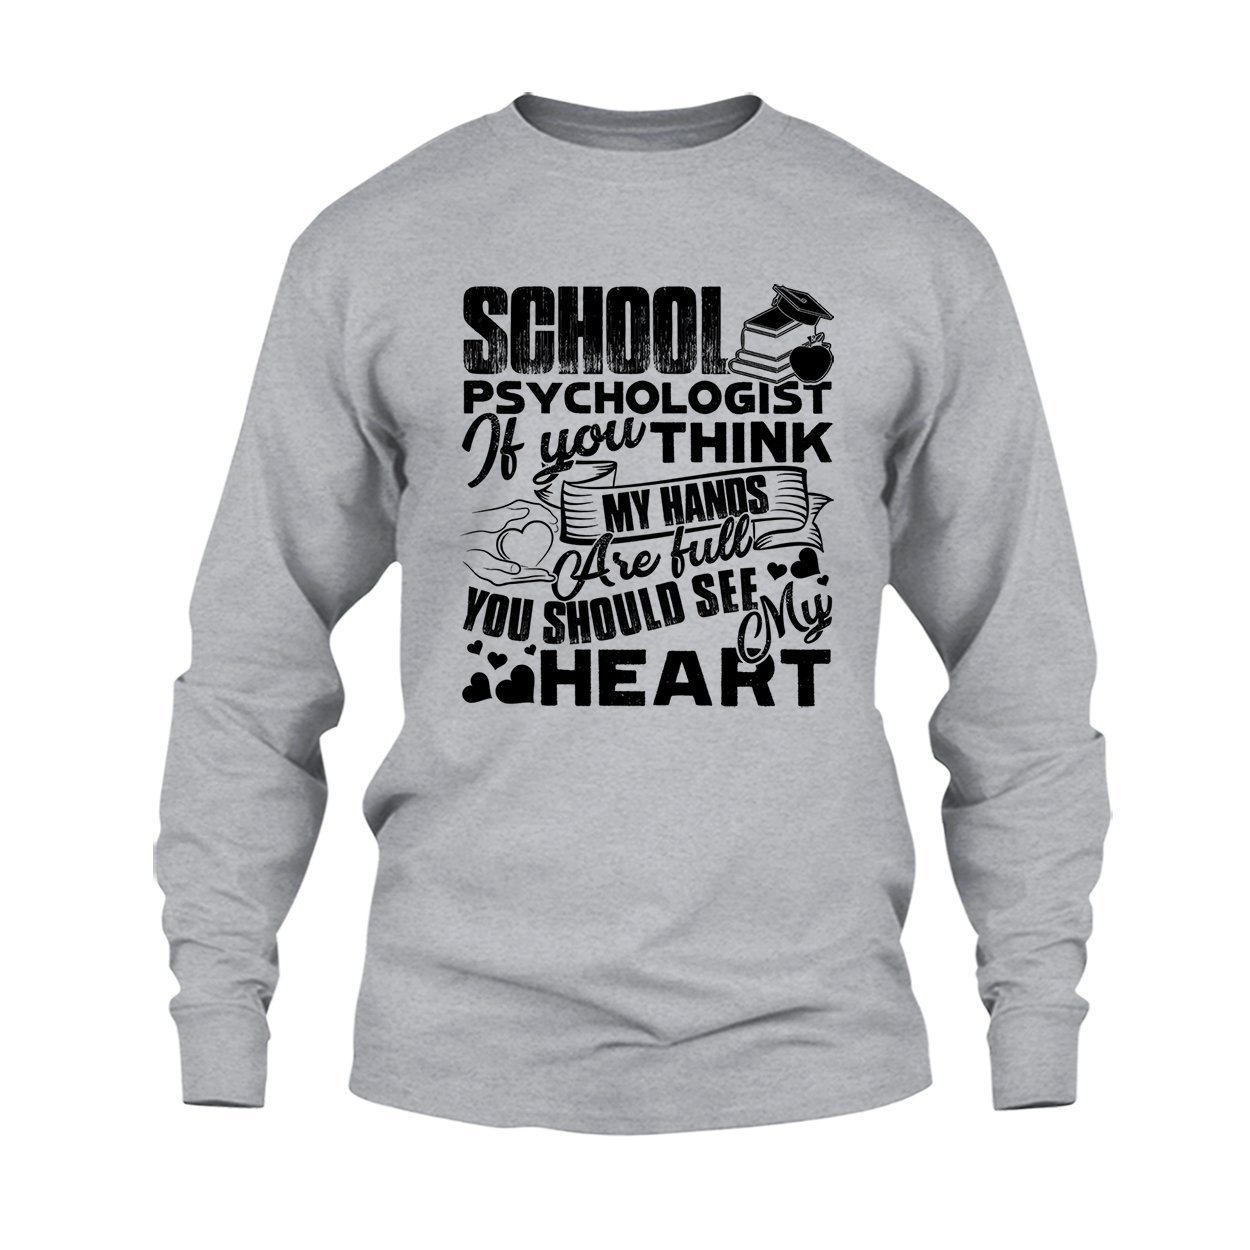 School Psychologist Full Heart Shirt Tee Shirt Clothing